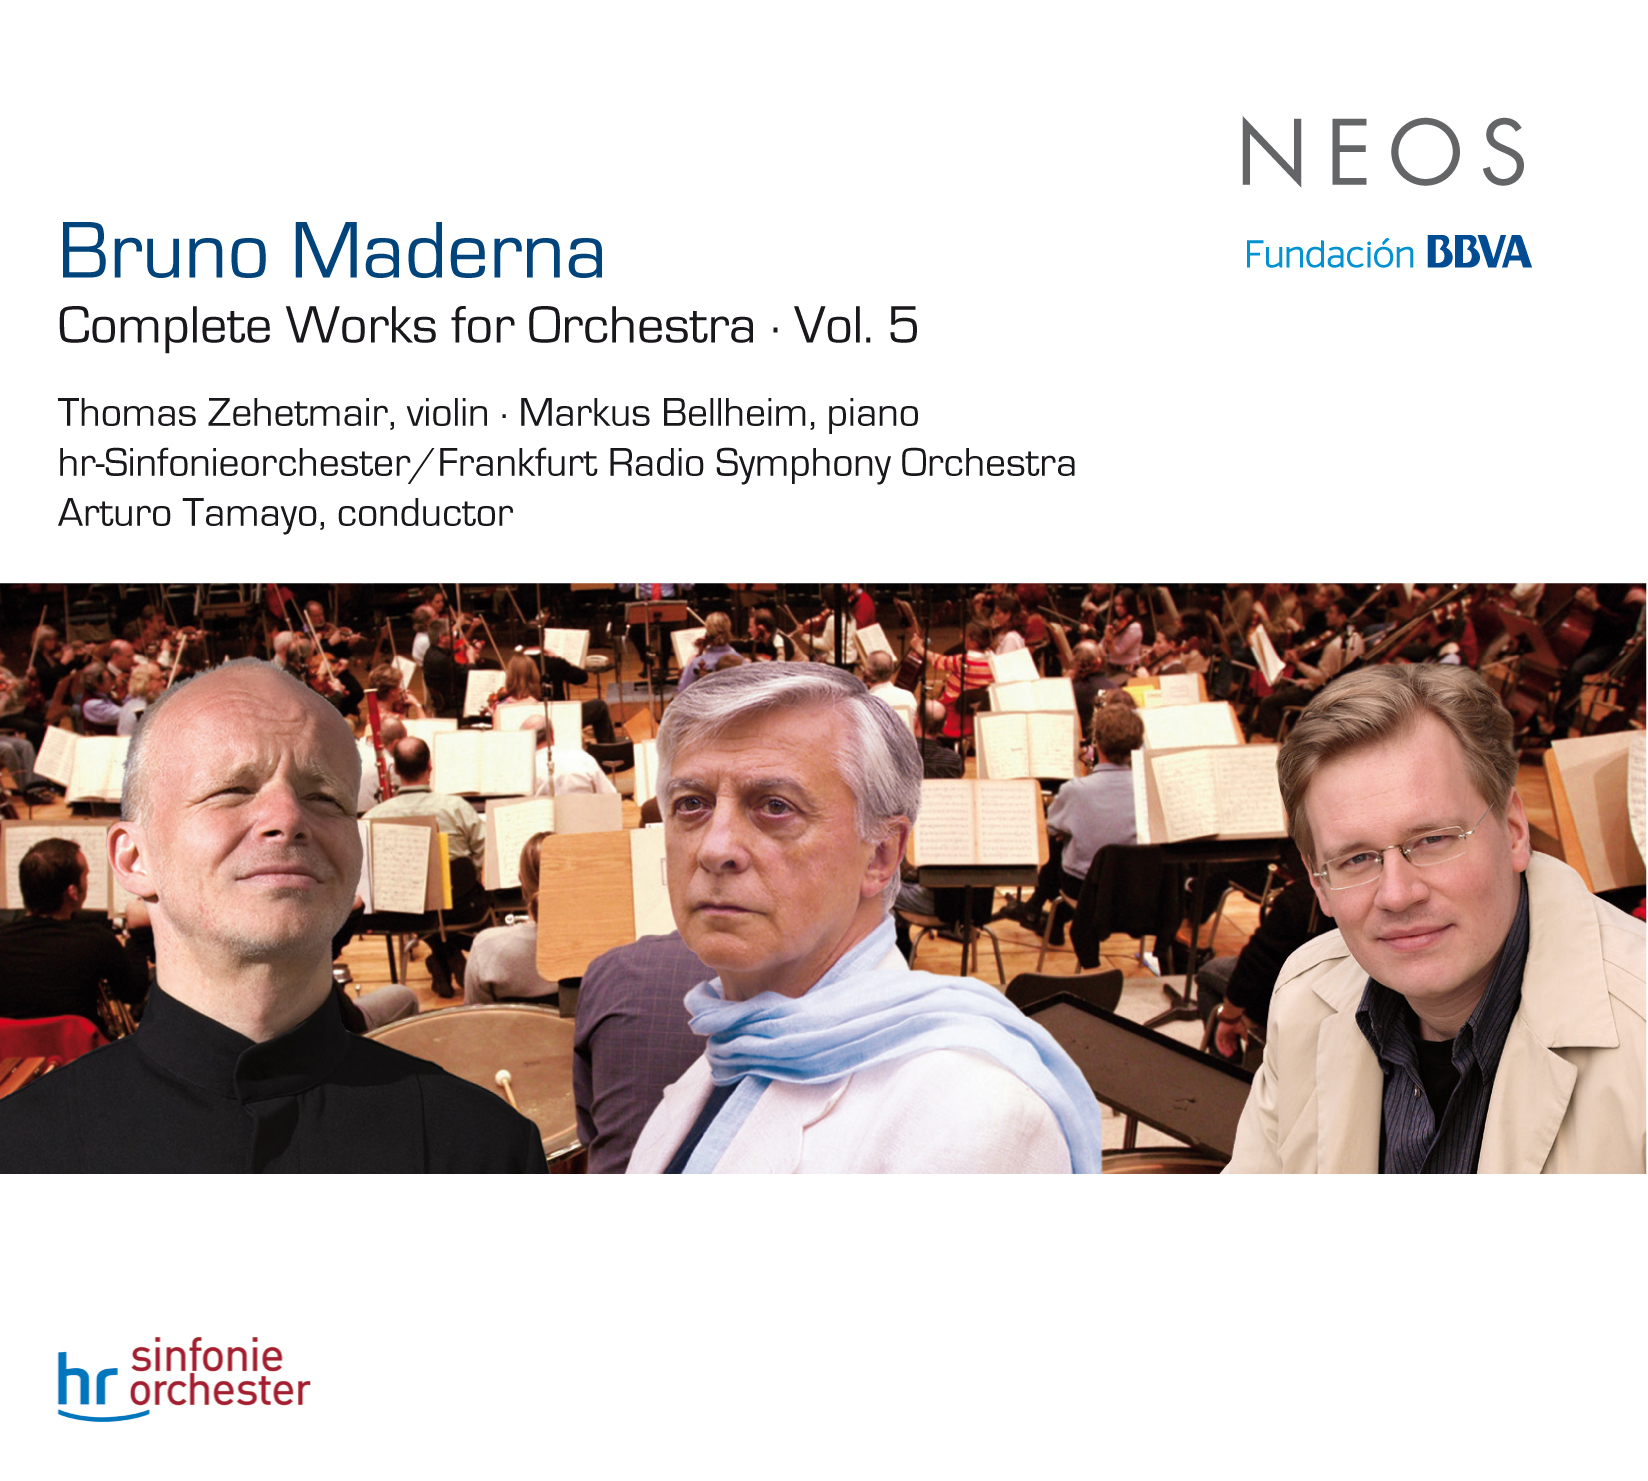 Bruno Maderna / Complete Works for Orchestra, vol. 5 // Arturo Tamayo